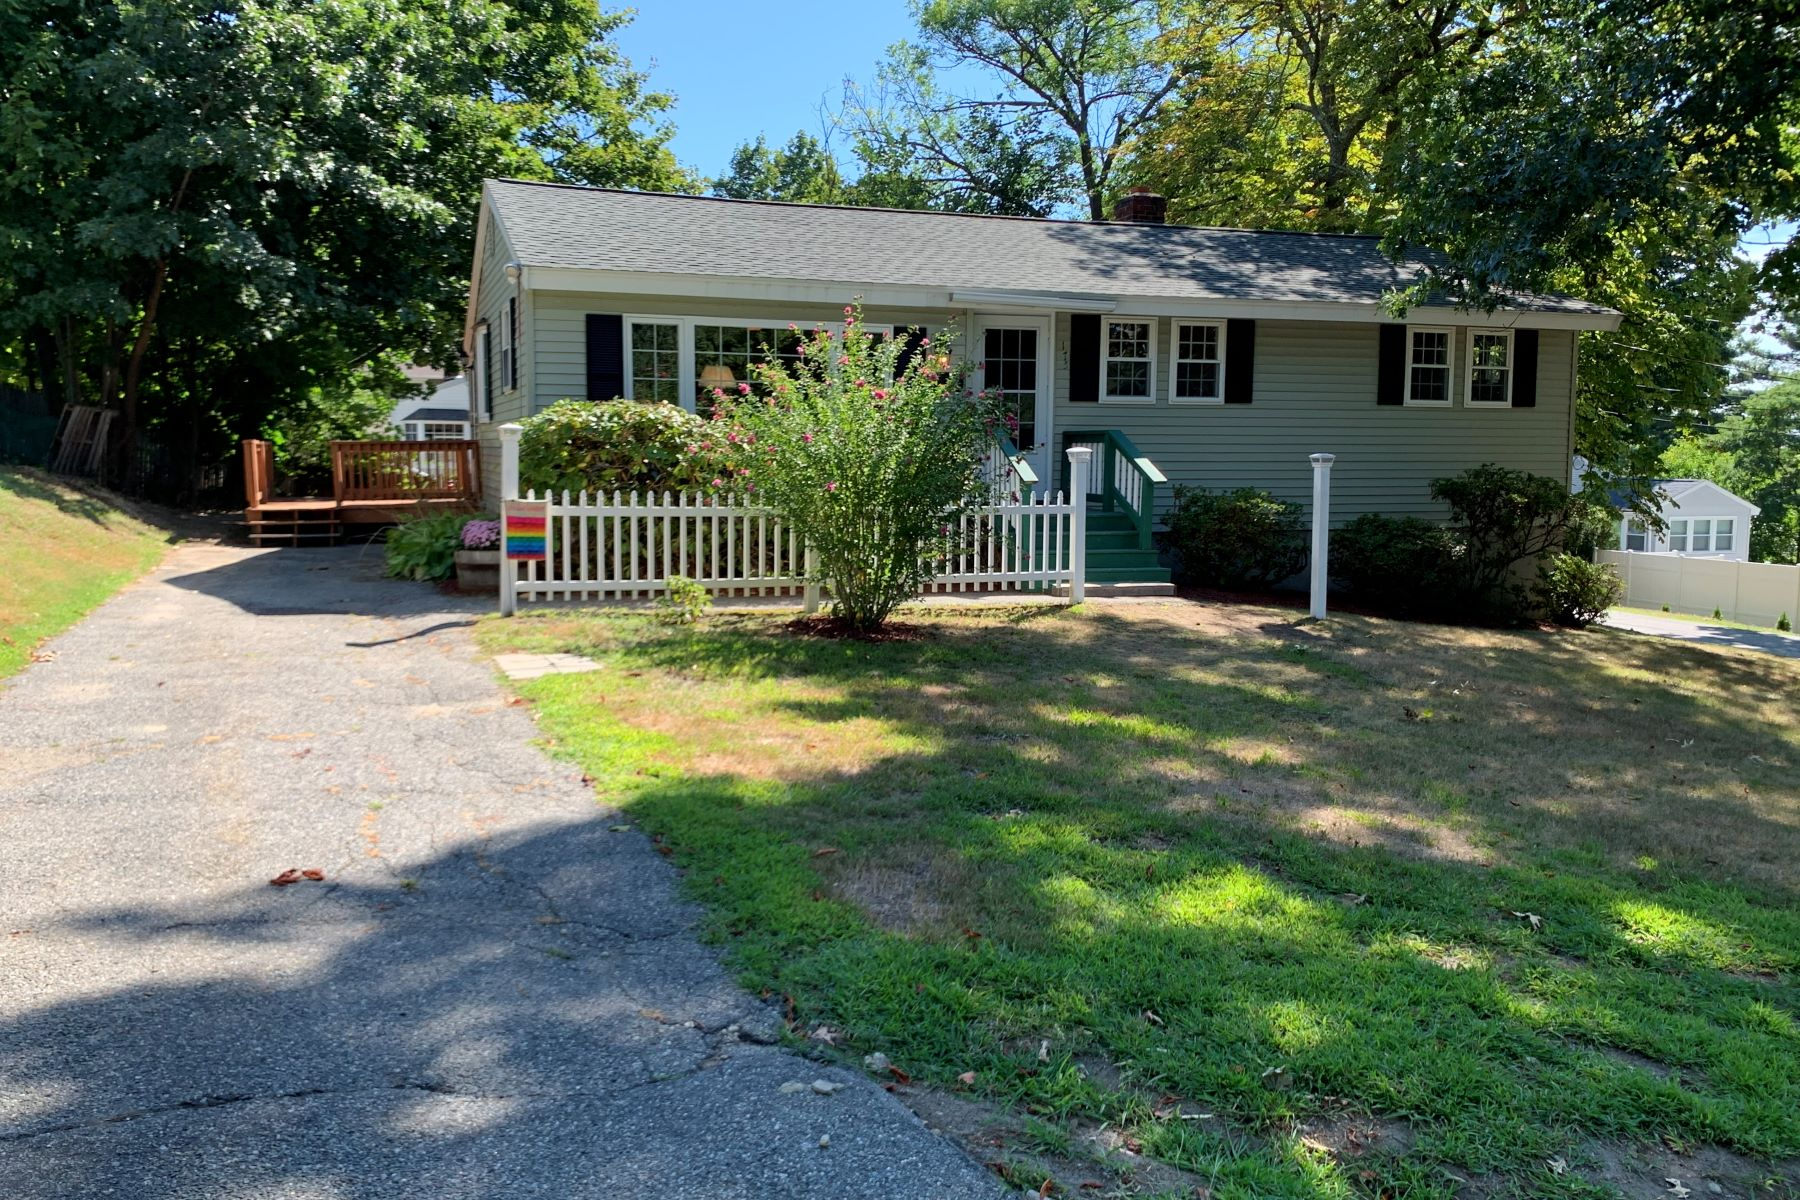 Single Family Homes for Sale at 175 Christian Street 175 Christian St Lowell, Massachusetts 01850 United States